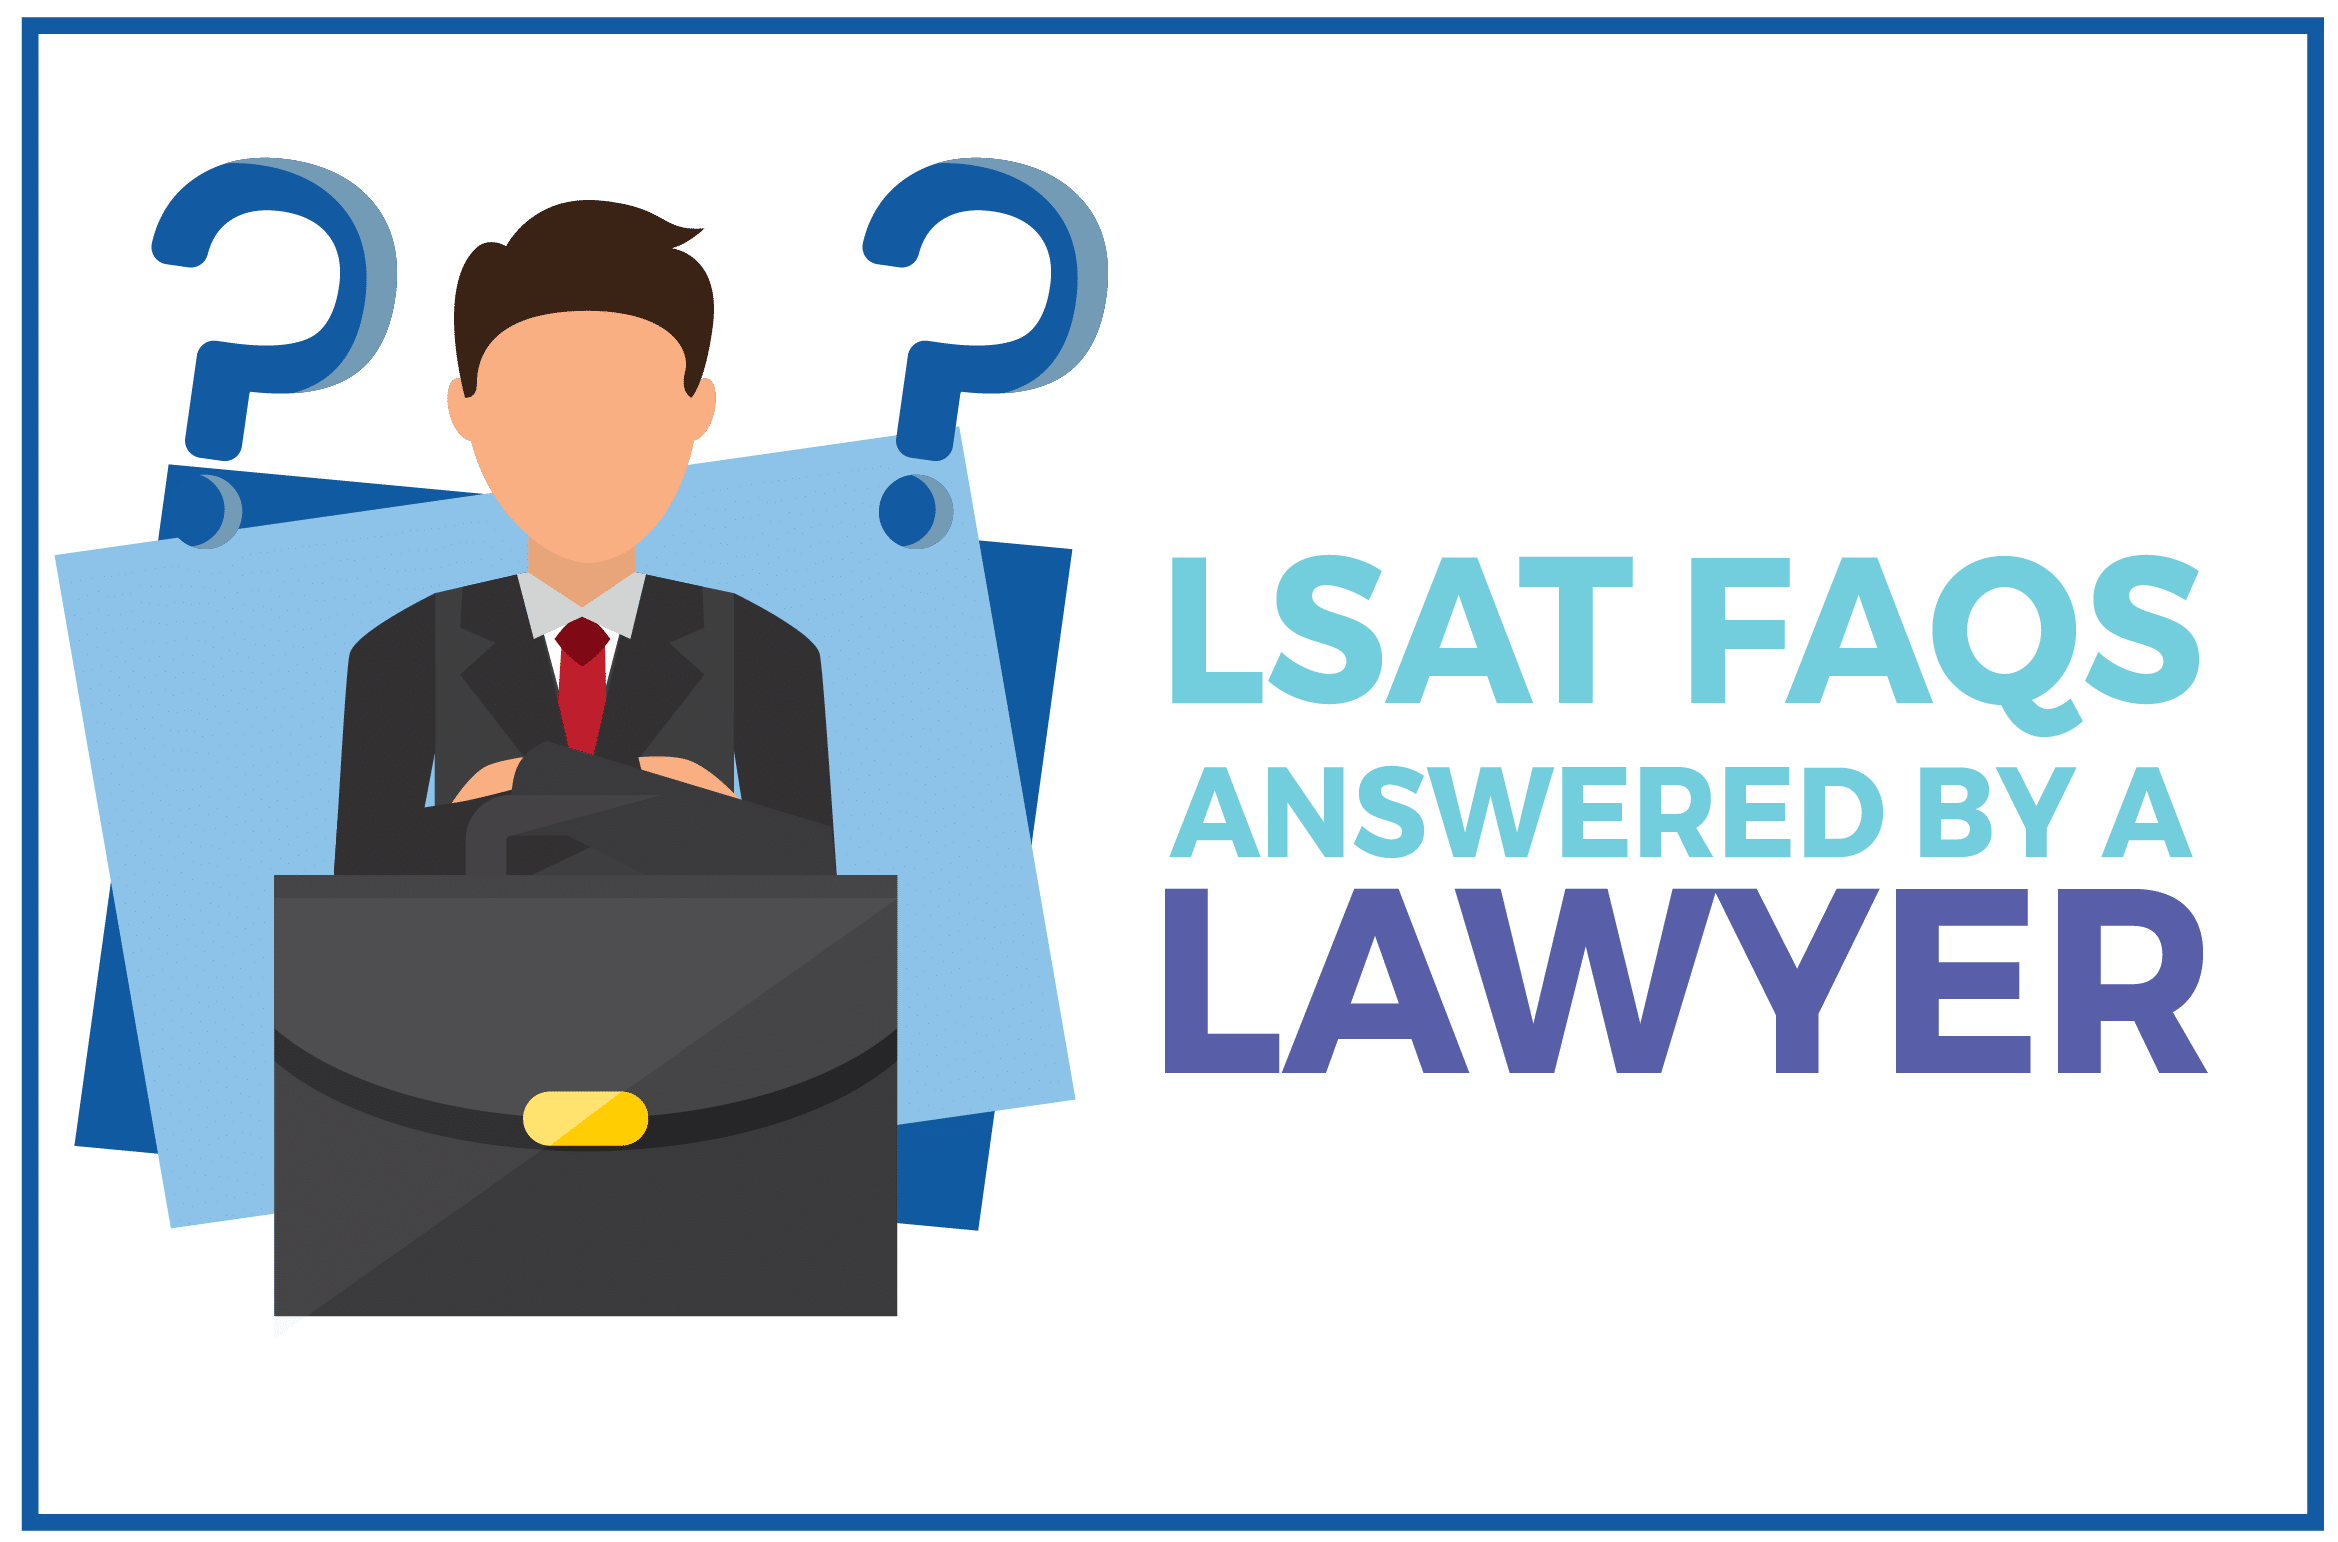 LSAT FAQs Answered by a Lawyer